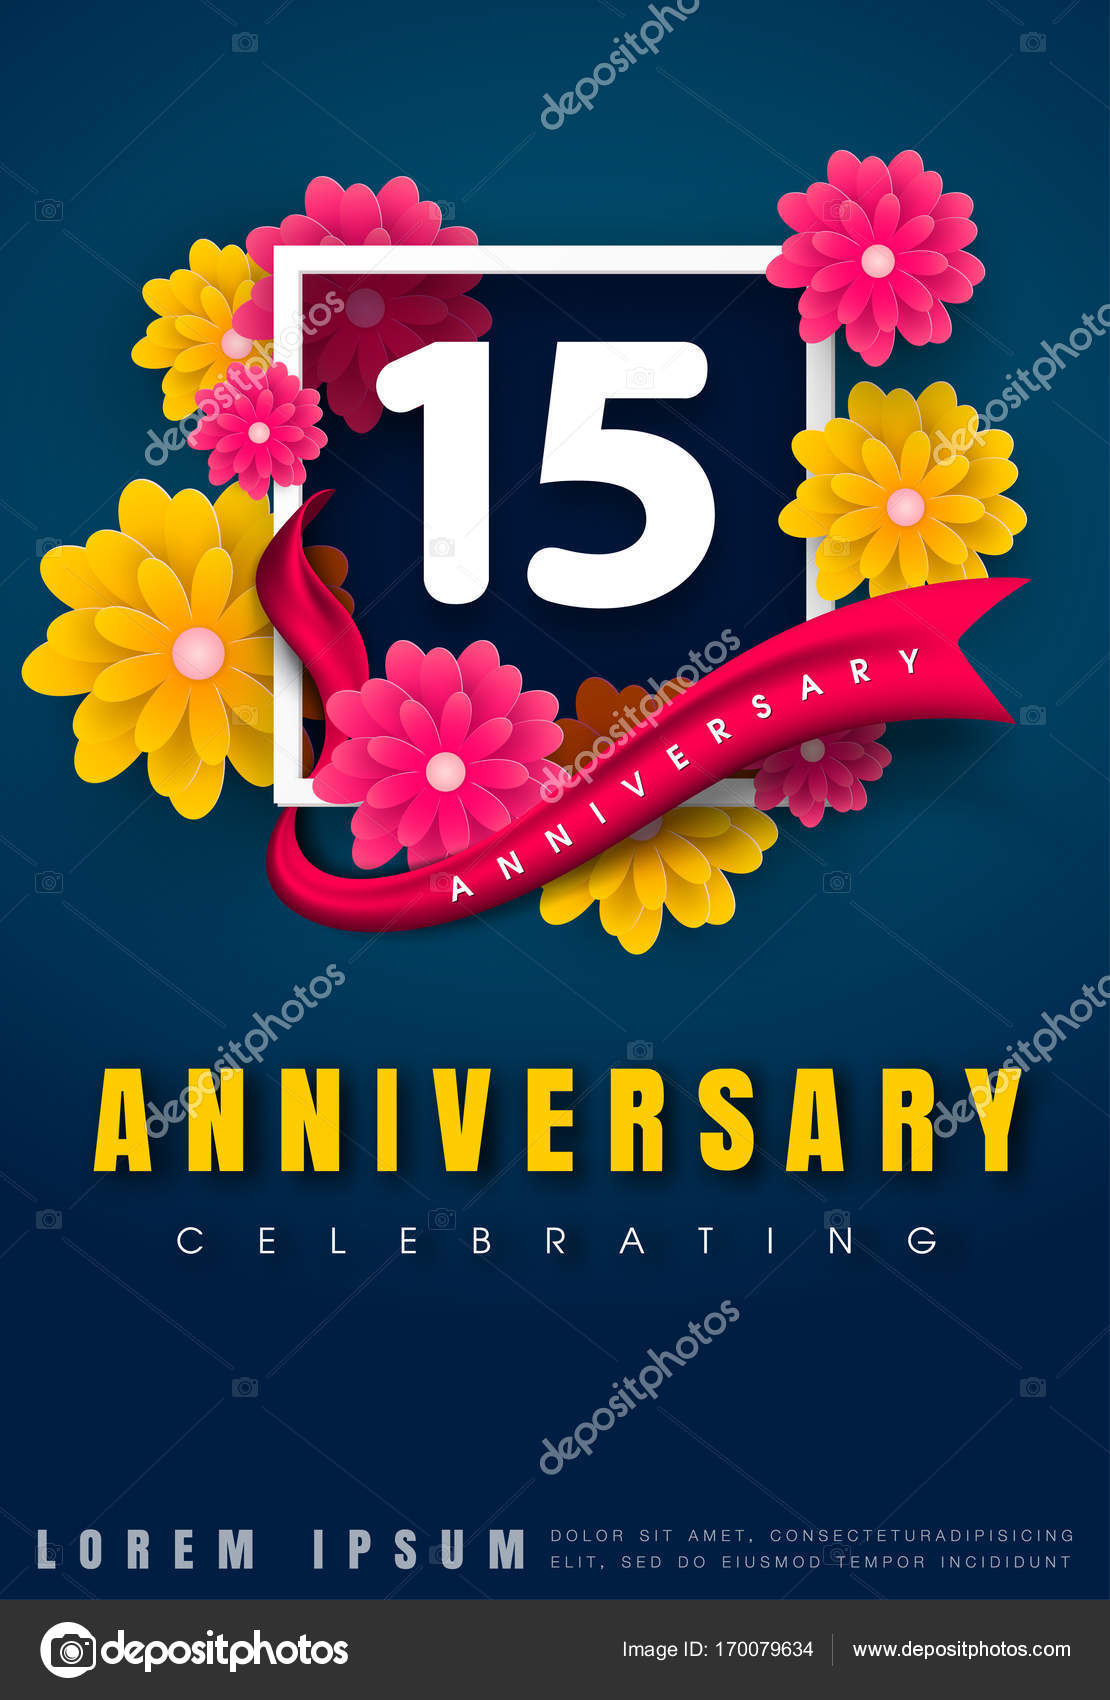 Anniversary invitation card template design stock vector 15 years anniversary invitation card celebration template design 15th anniversary with flowers and modern design elements dark blue background vector stopboris Image collections